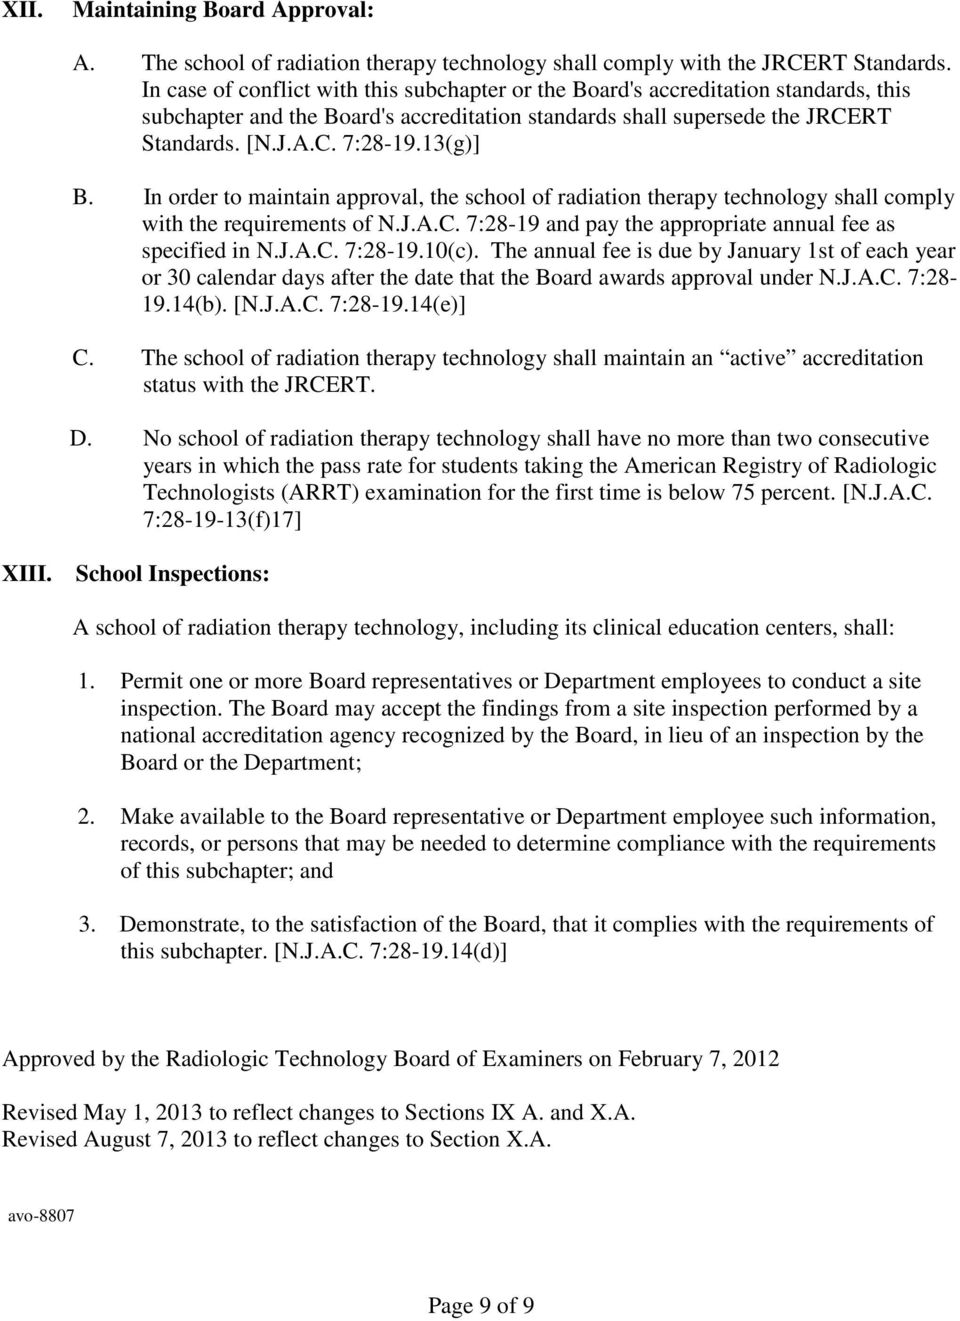 13(g)] B. In order to maintain approval, the school of radiation therapy technology shall comply with the requirements of N.J.A.C. 7:28-19 and pay the appropriate annual fee as specified in N.J.A.C. 7:28-19.10(c).